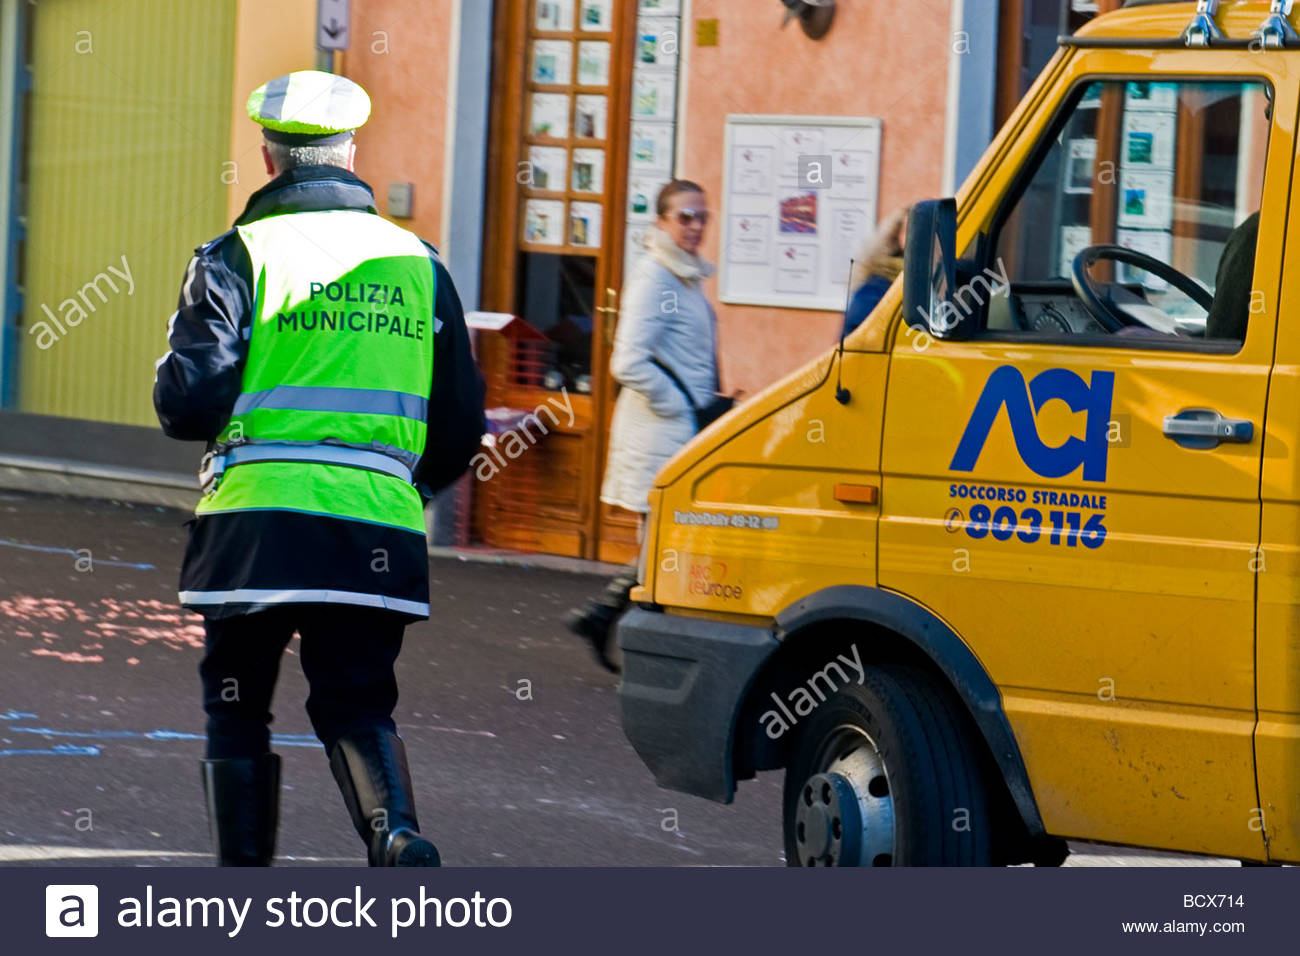 removal of an illegally parked car - Stock Image